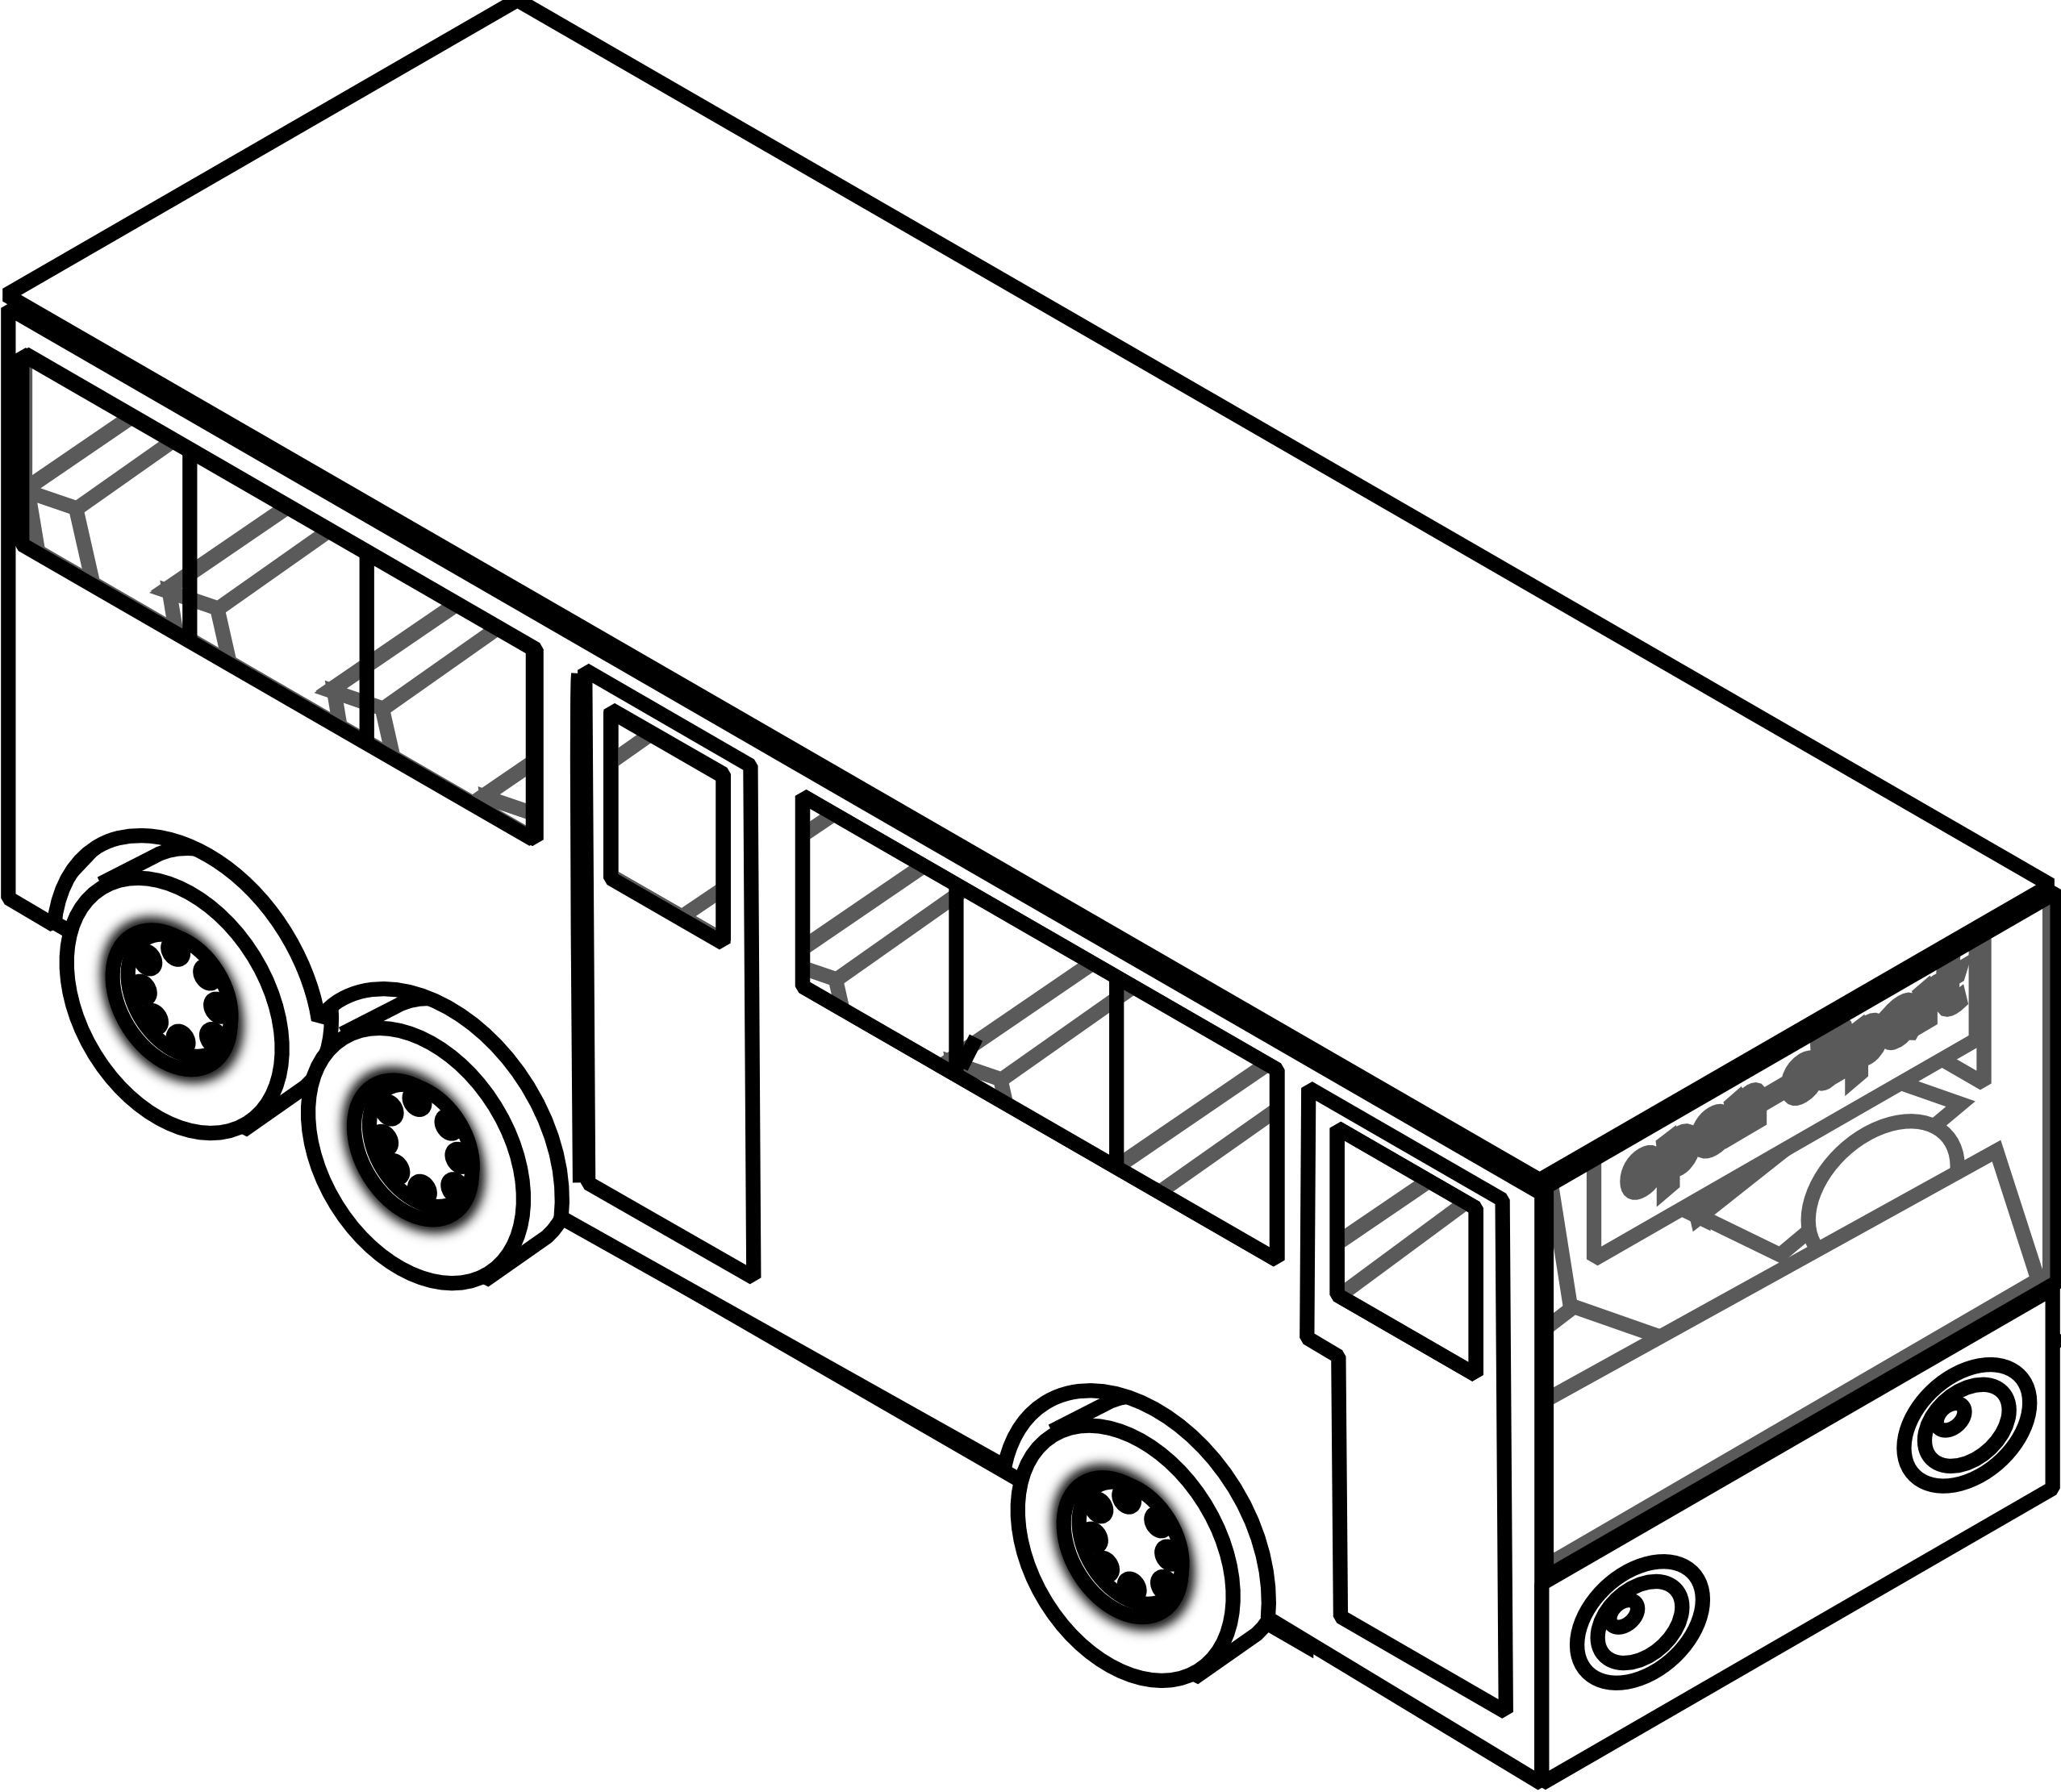 bus clipart black and white